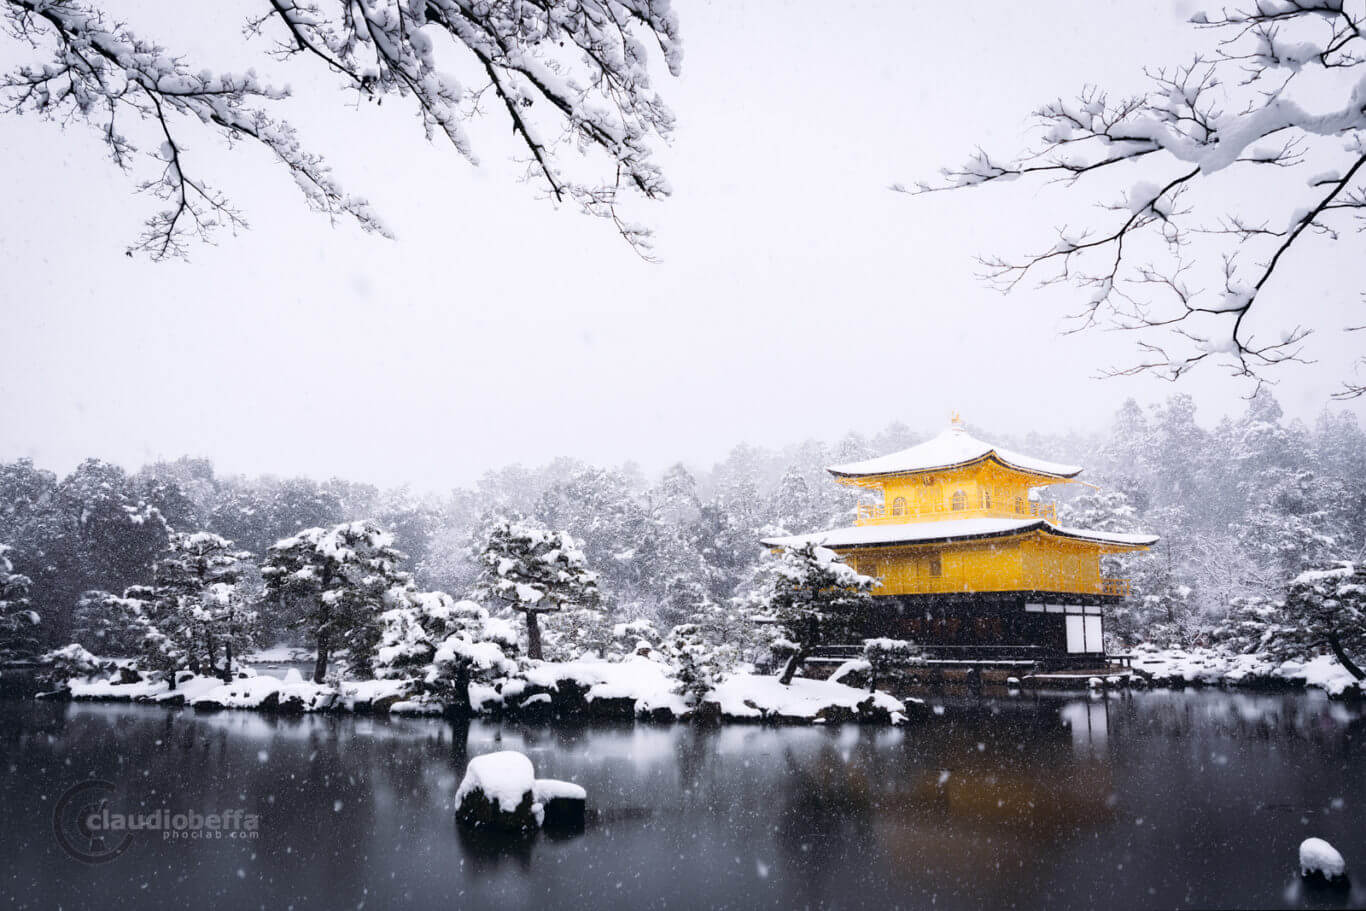 Kinkakuji golden vision, Kinkakuji, Gold, Snow, Snowfall, Garden, White, Trees, Pond, Kyoto, Japan